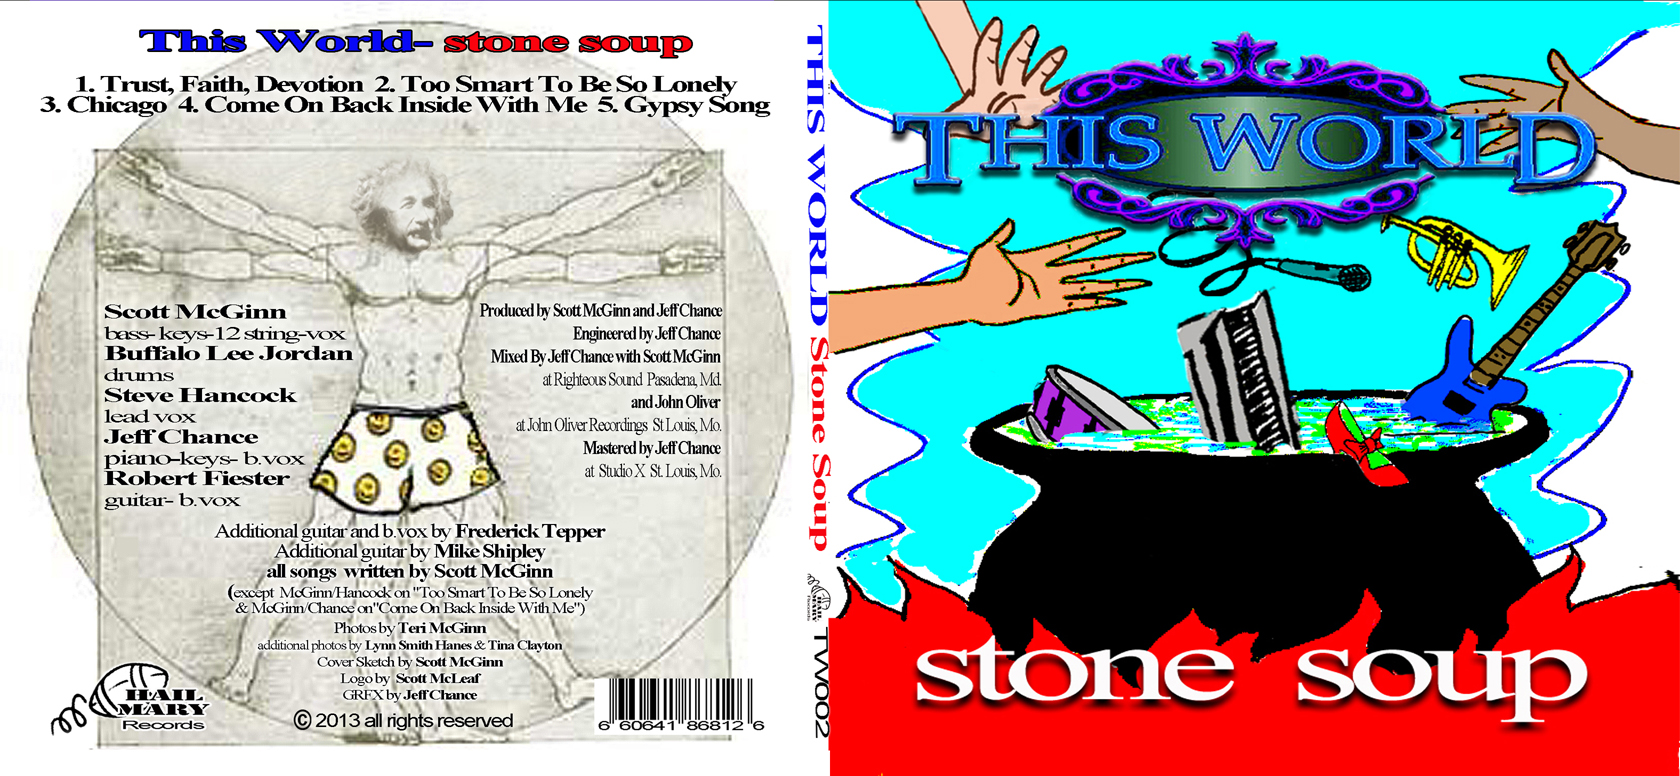 Stone soup front and rear cover